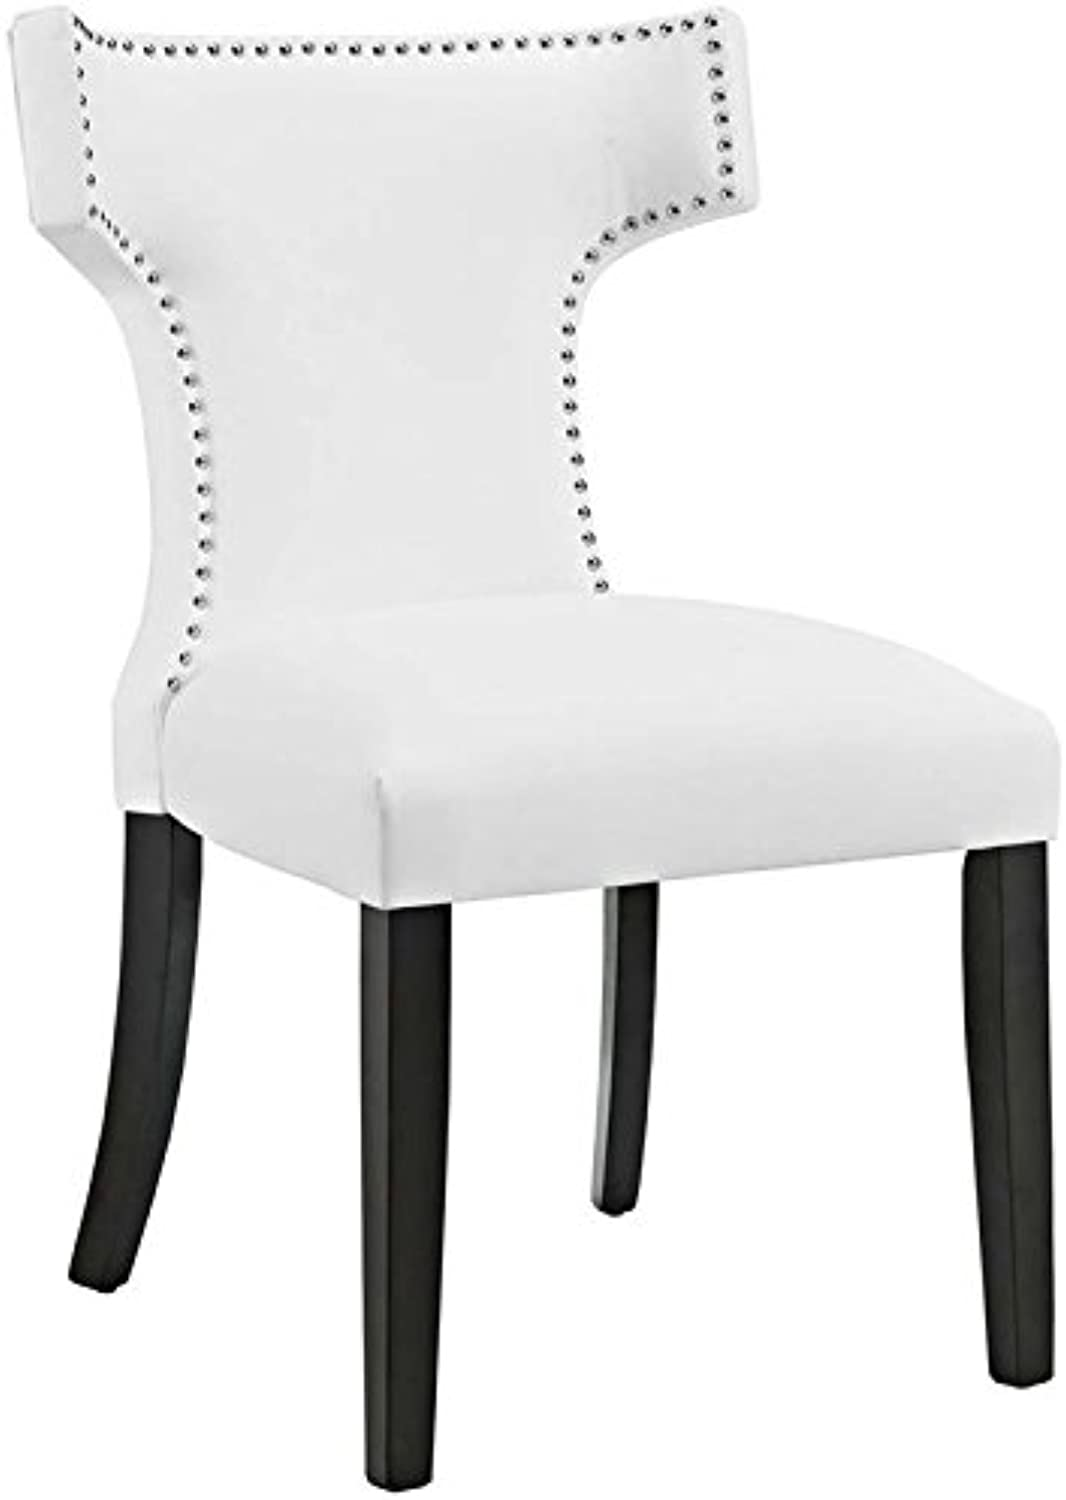 Hawthorne Collection Faux Leather Upholstered Dining Side Chair in White